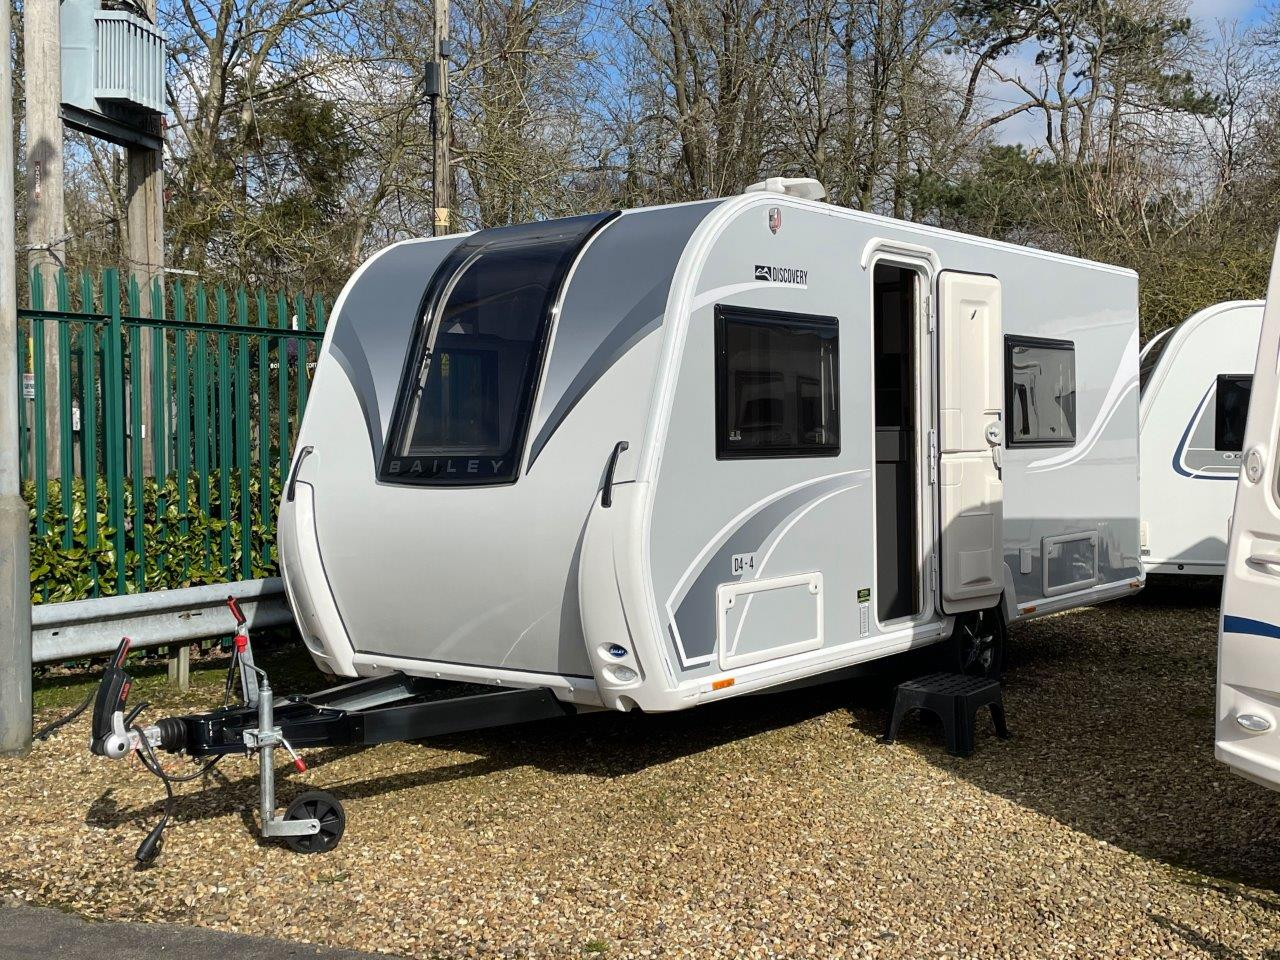 Bailey Discovery D4-4 2020 (16)